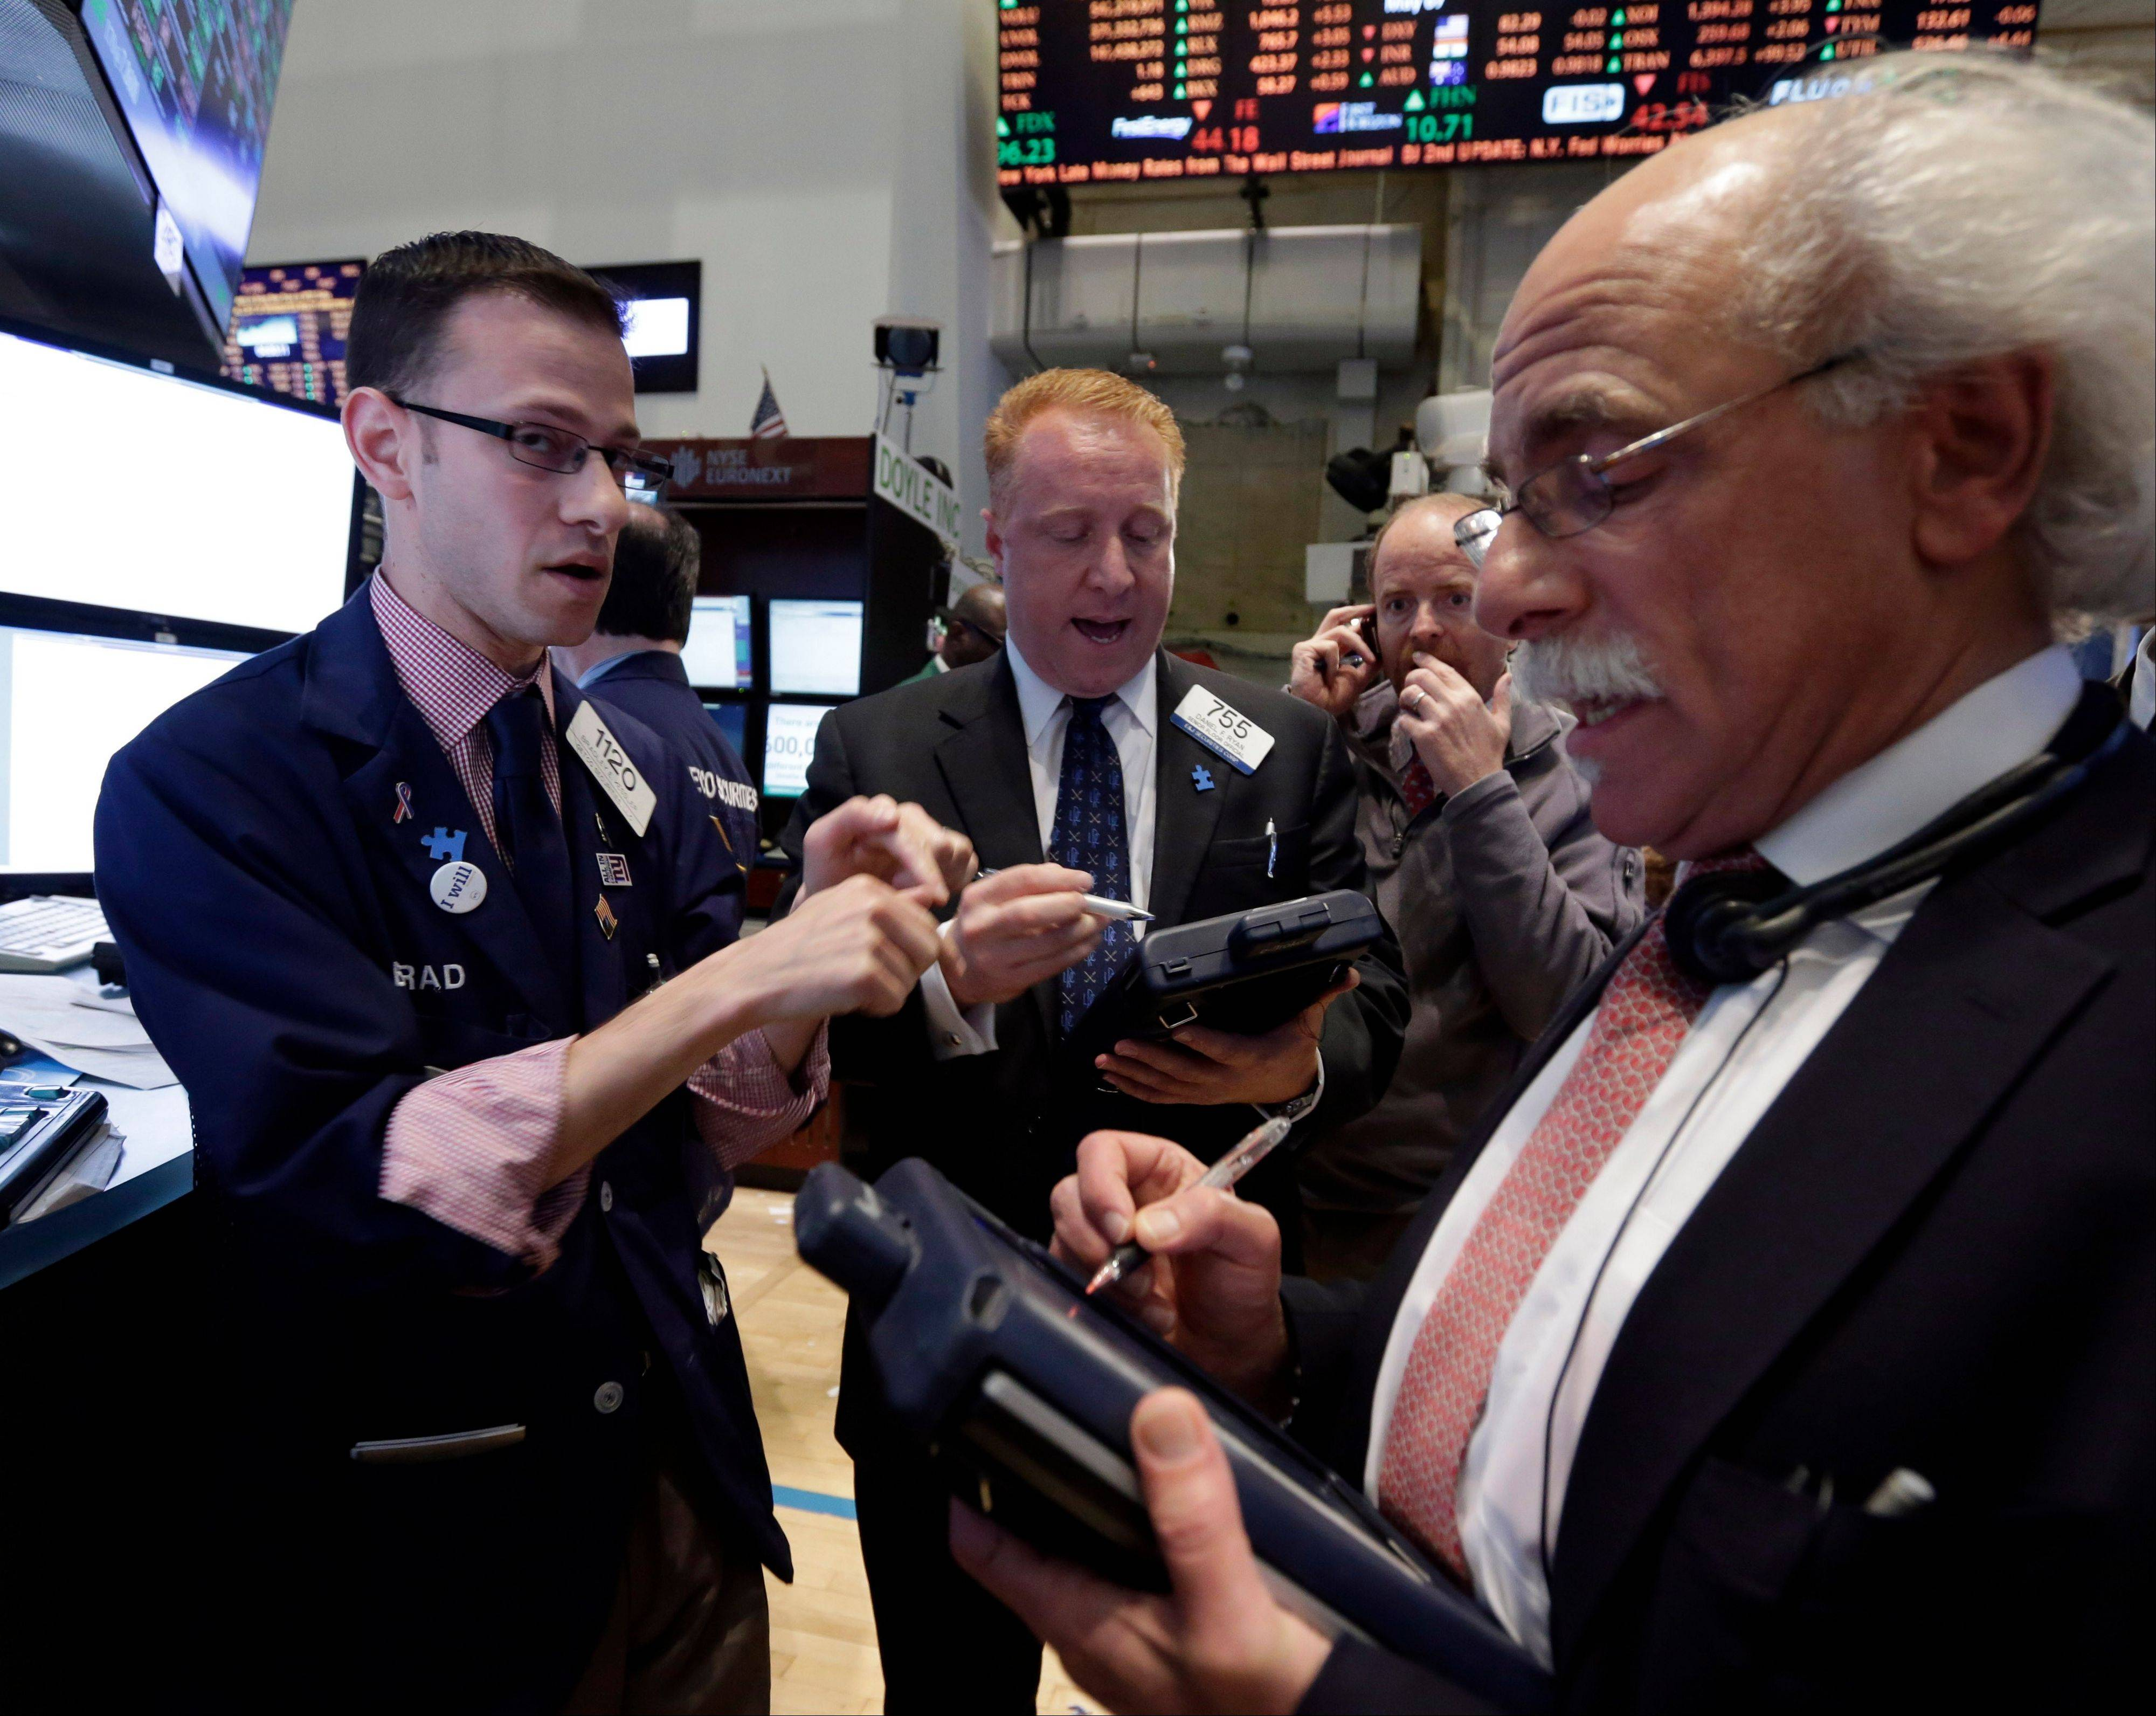 U.S. stocks fell, ending four days of records for the Standard & Poor�s 500 Index, amid disappointing economic data and after a Federal Reserve official said the central bank may slow the pace of stimulus as early as this summer.